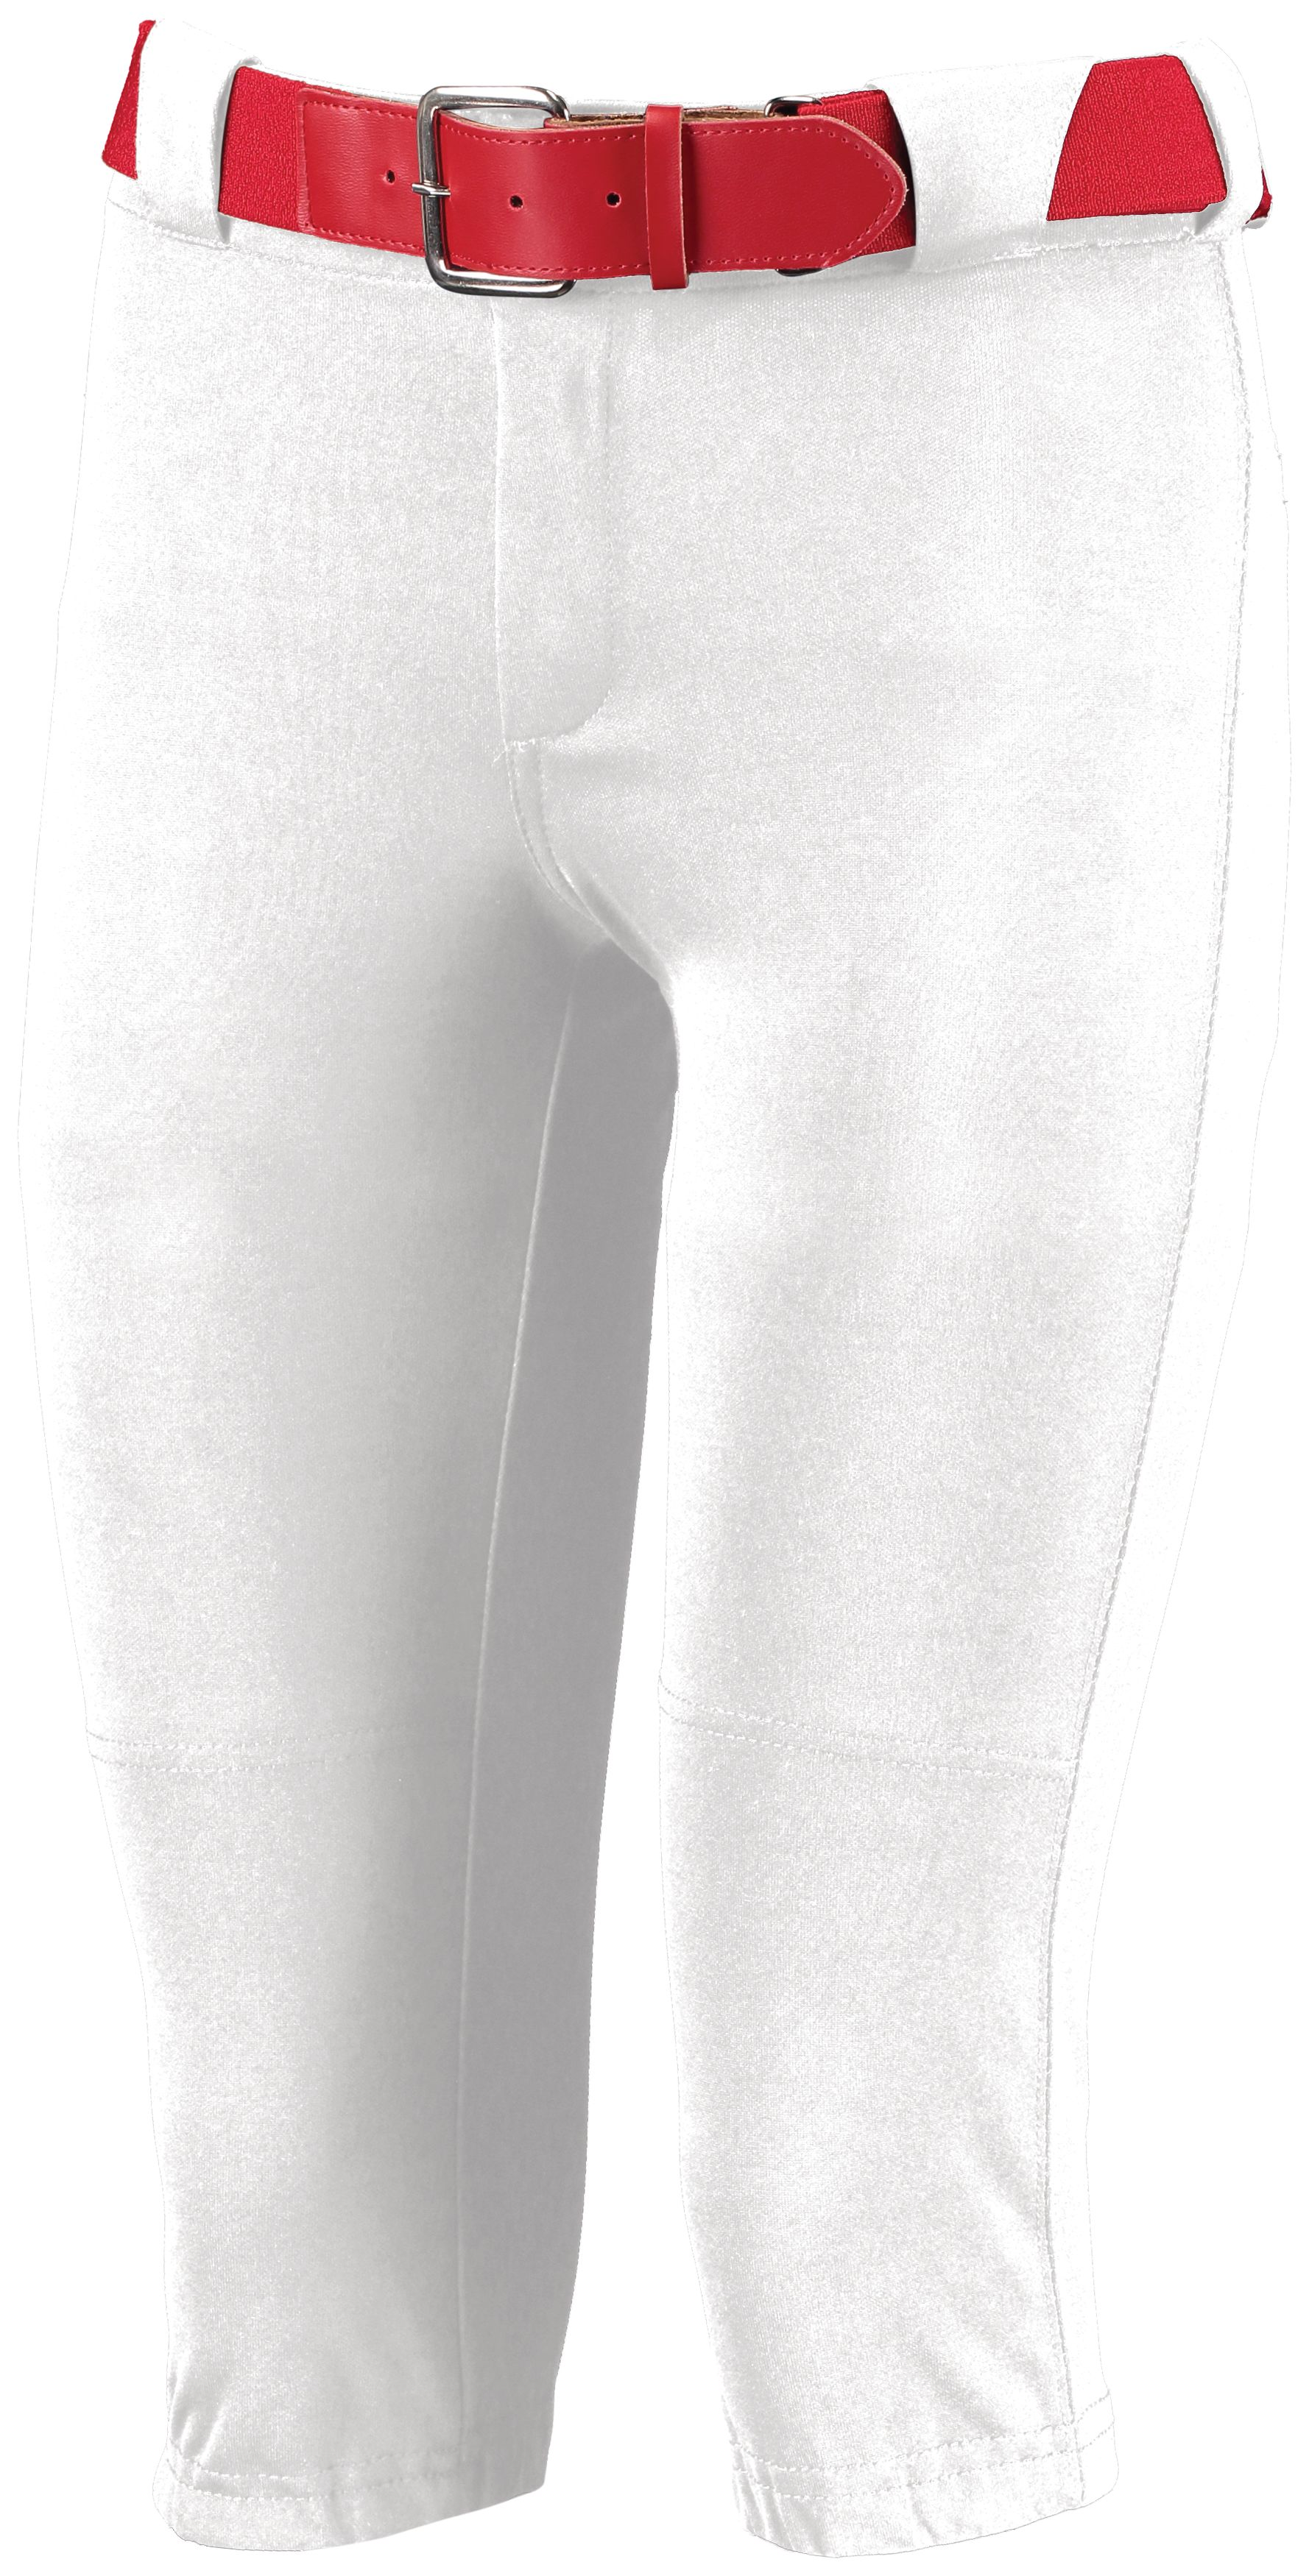 Ladies Low Rise Knicker Length Pant - White